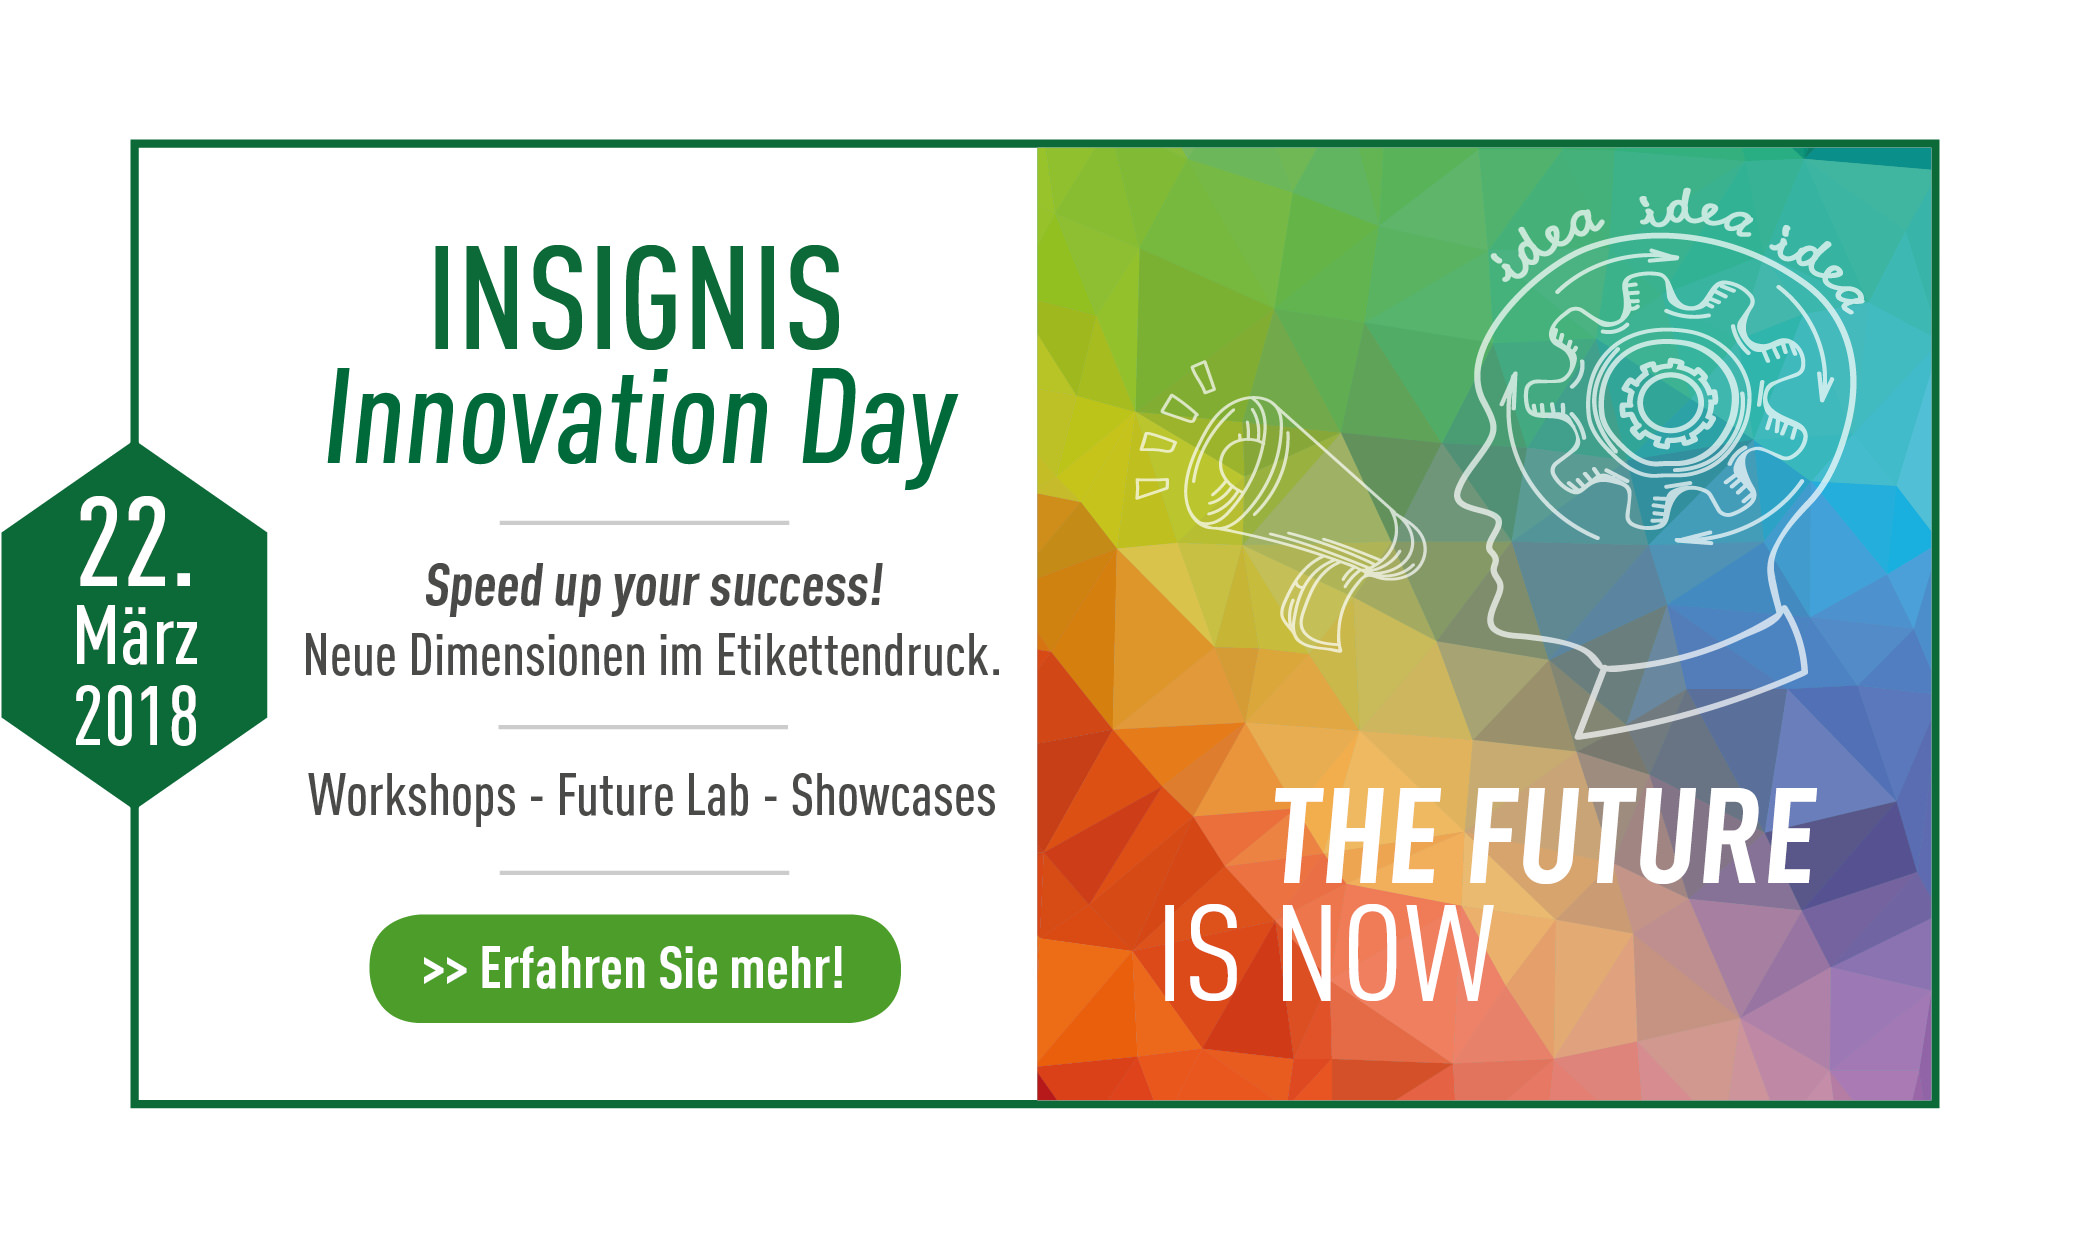 Innovation Day 2018